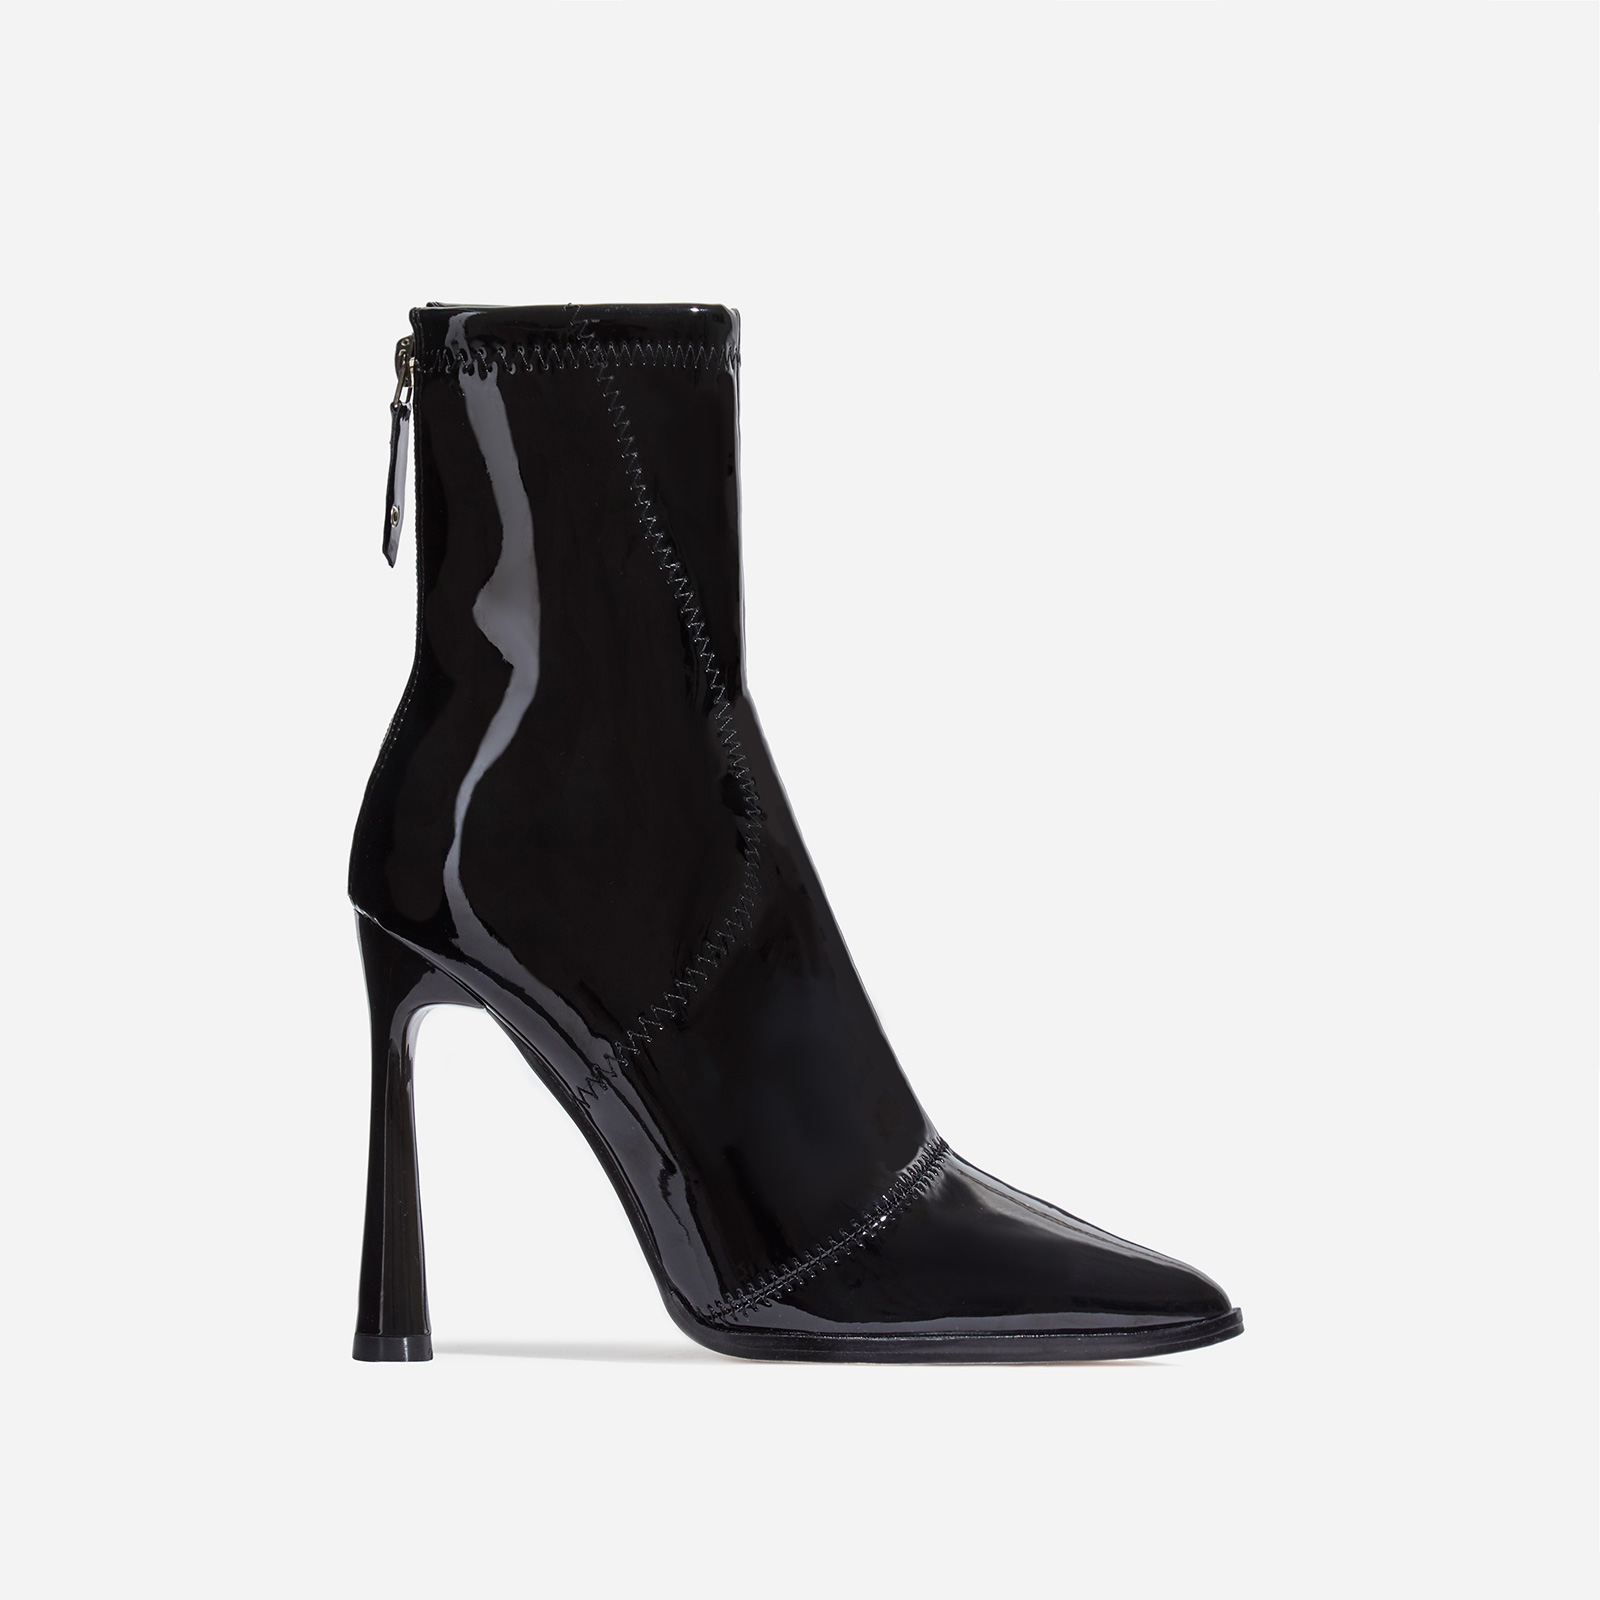 Nolan Curved Heel Ankle Boot In Black Patent